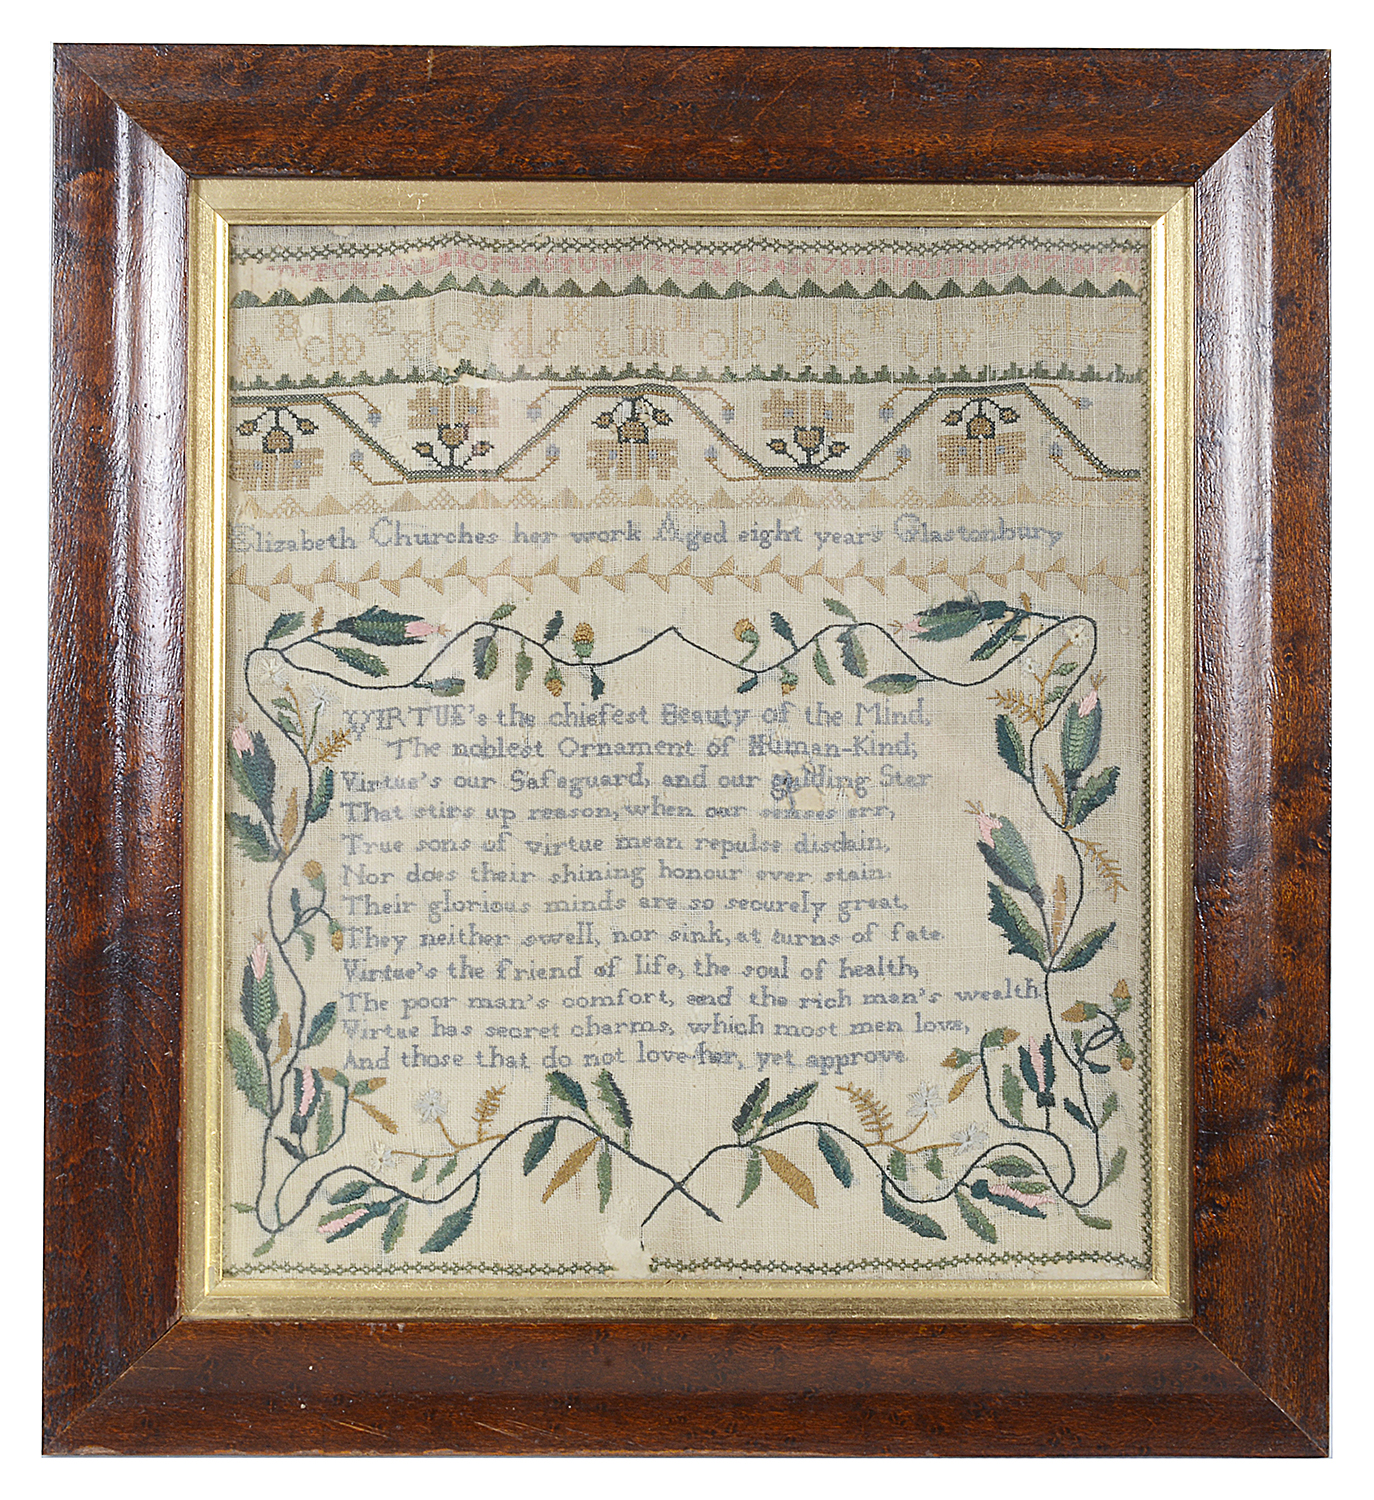 Lot 15 - A needlework sampler by Sarah Leaper, February 26th 1771